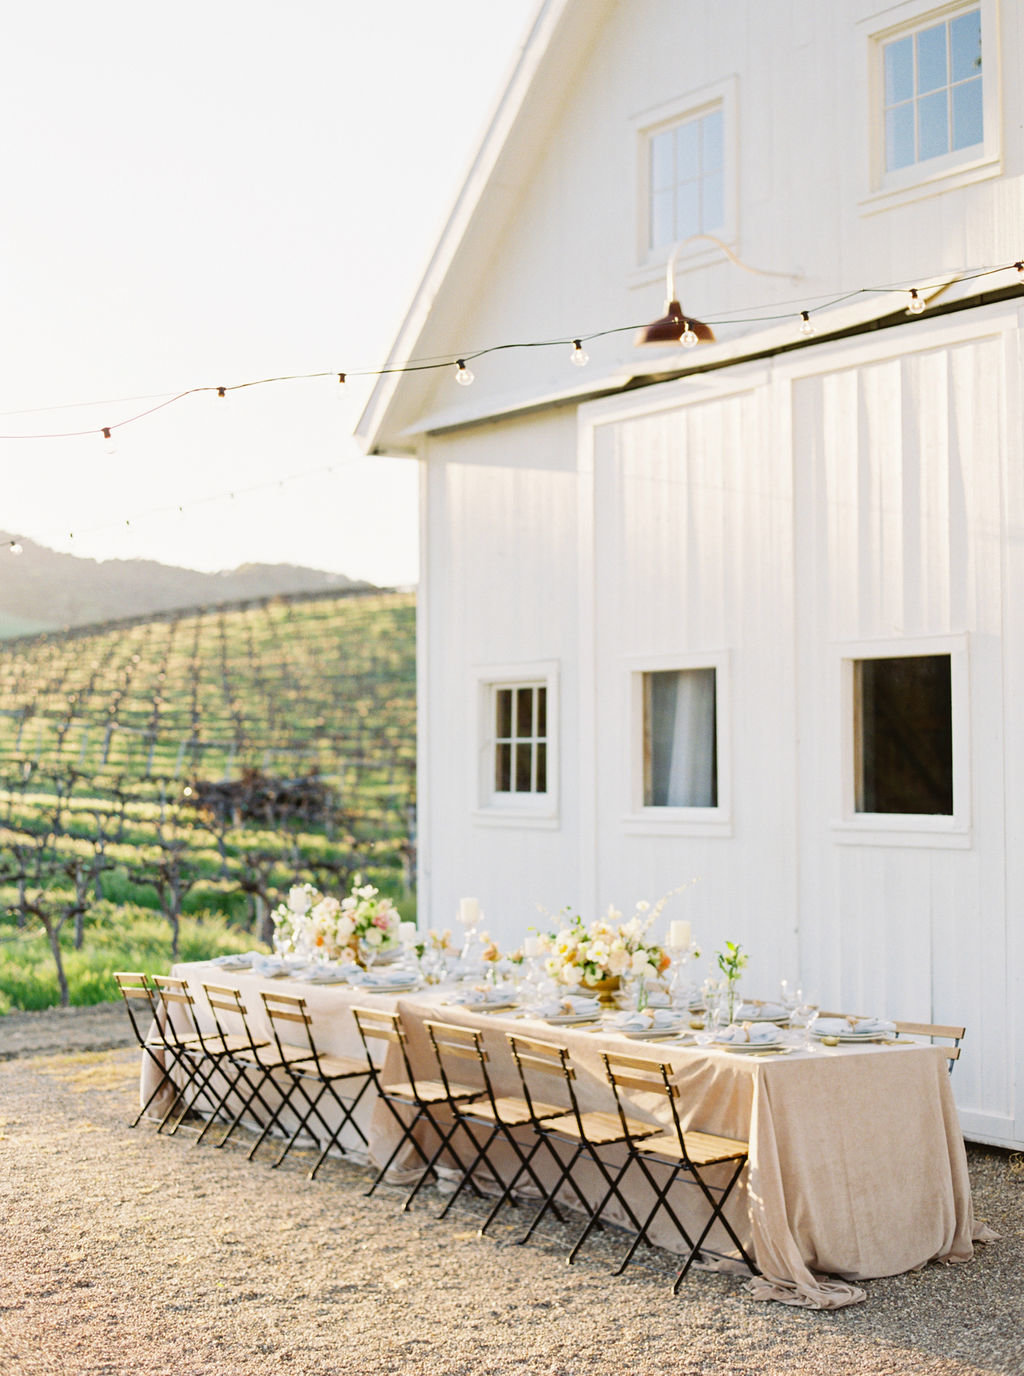 Hammersky-Vineyards-Wedding-by-San-Luis-Obispo-Wedding-Planner-Embark-Event-Design-17